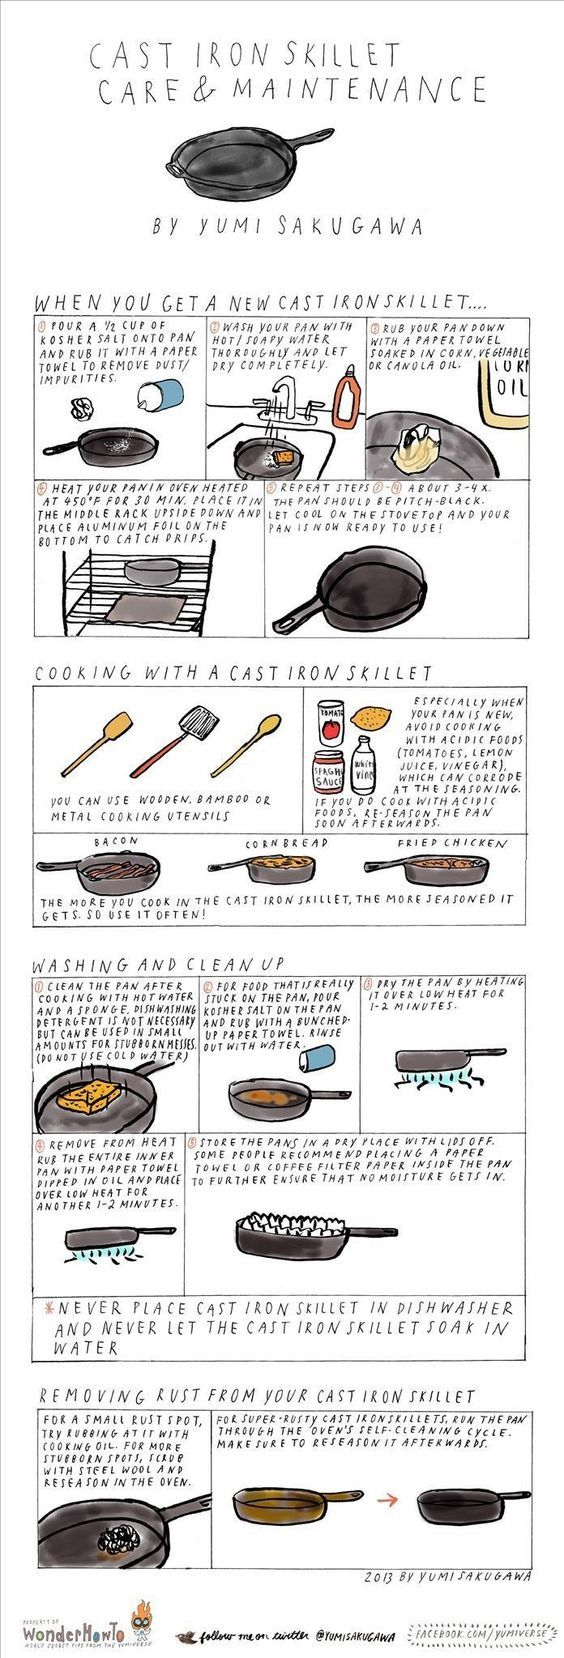 When aisha cooks how to make oatmeal custard my style aisha - Best 25 Rainbow Steak House Ideas On Pinterest Plant Growing Games Garden Pots Ideas Diy And Page And Plant